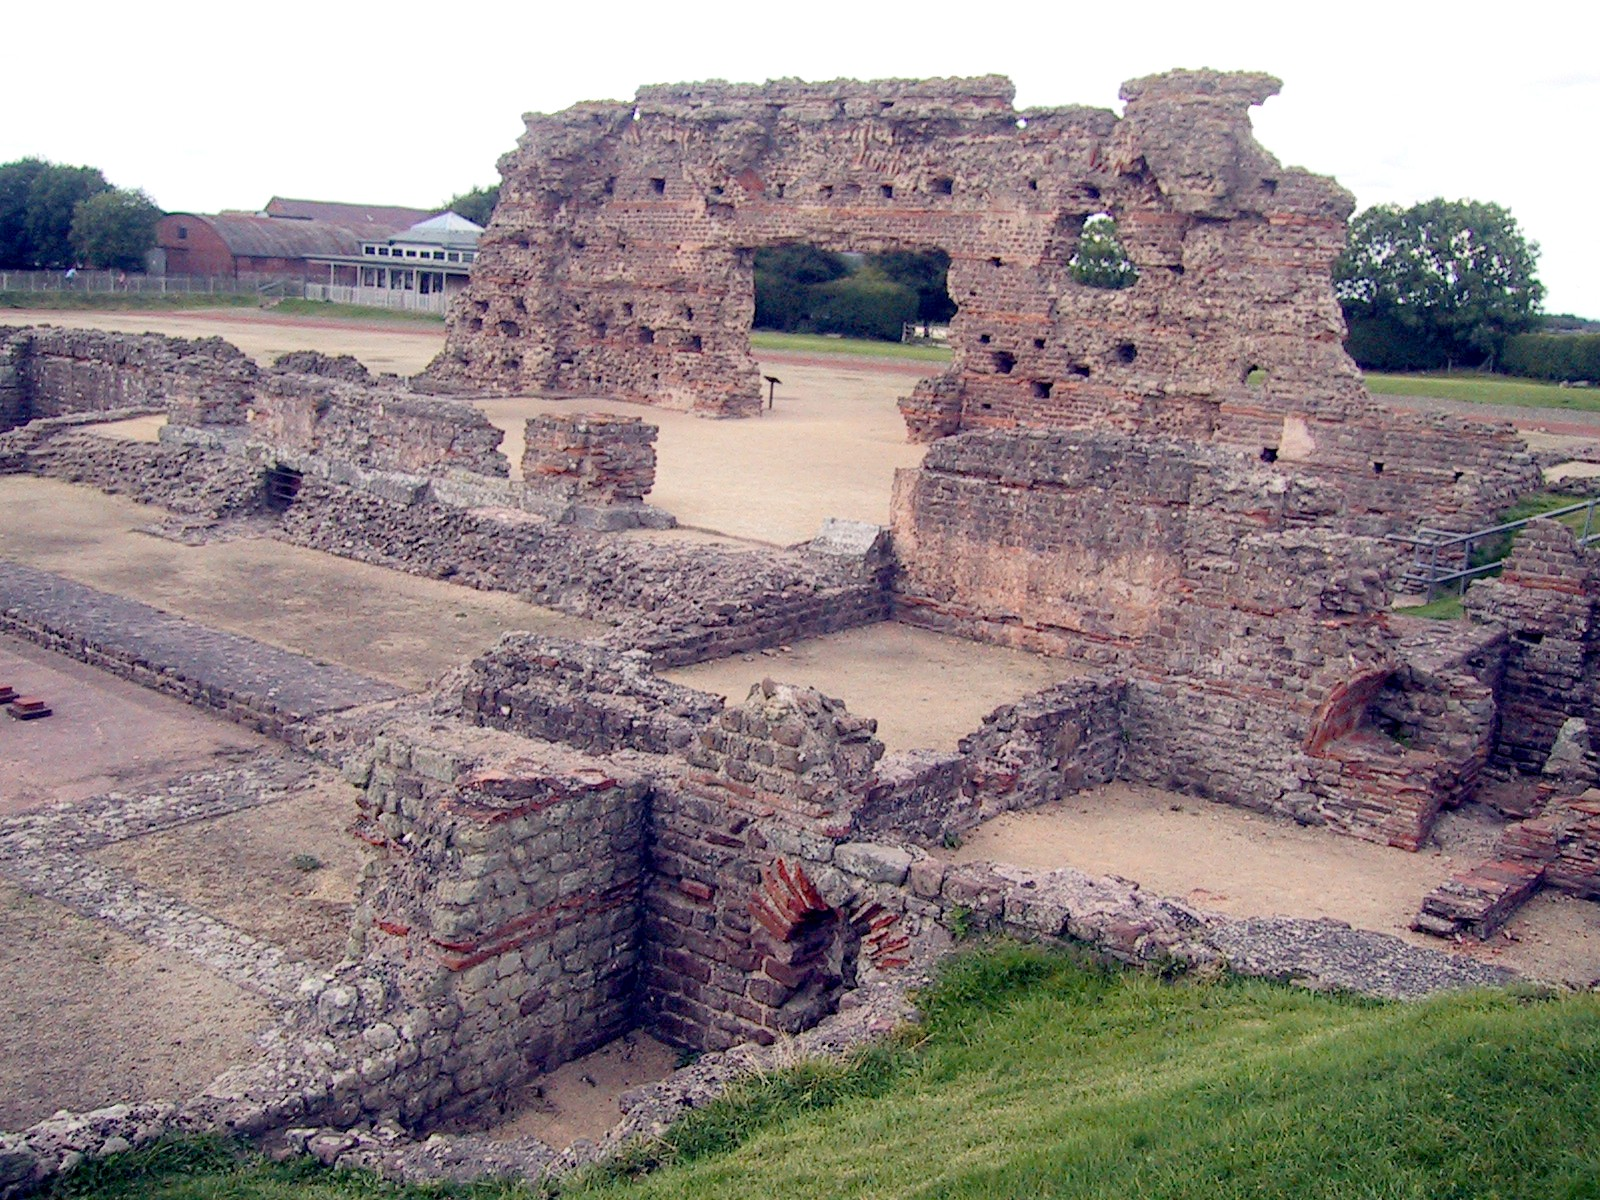 Wroxeter, near present-day Shrewsbury. Although the basilica of the Roman baths fell into disuse around 350 CE, a later phase of large wooden buildings with classical facades was constructed around 480, demonstrating a high level of civilization. - PHOTO BY BARRY EVANS